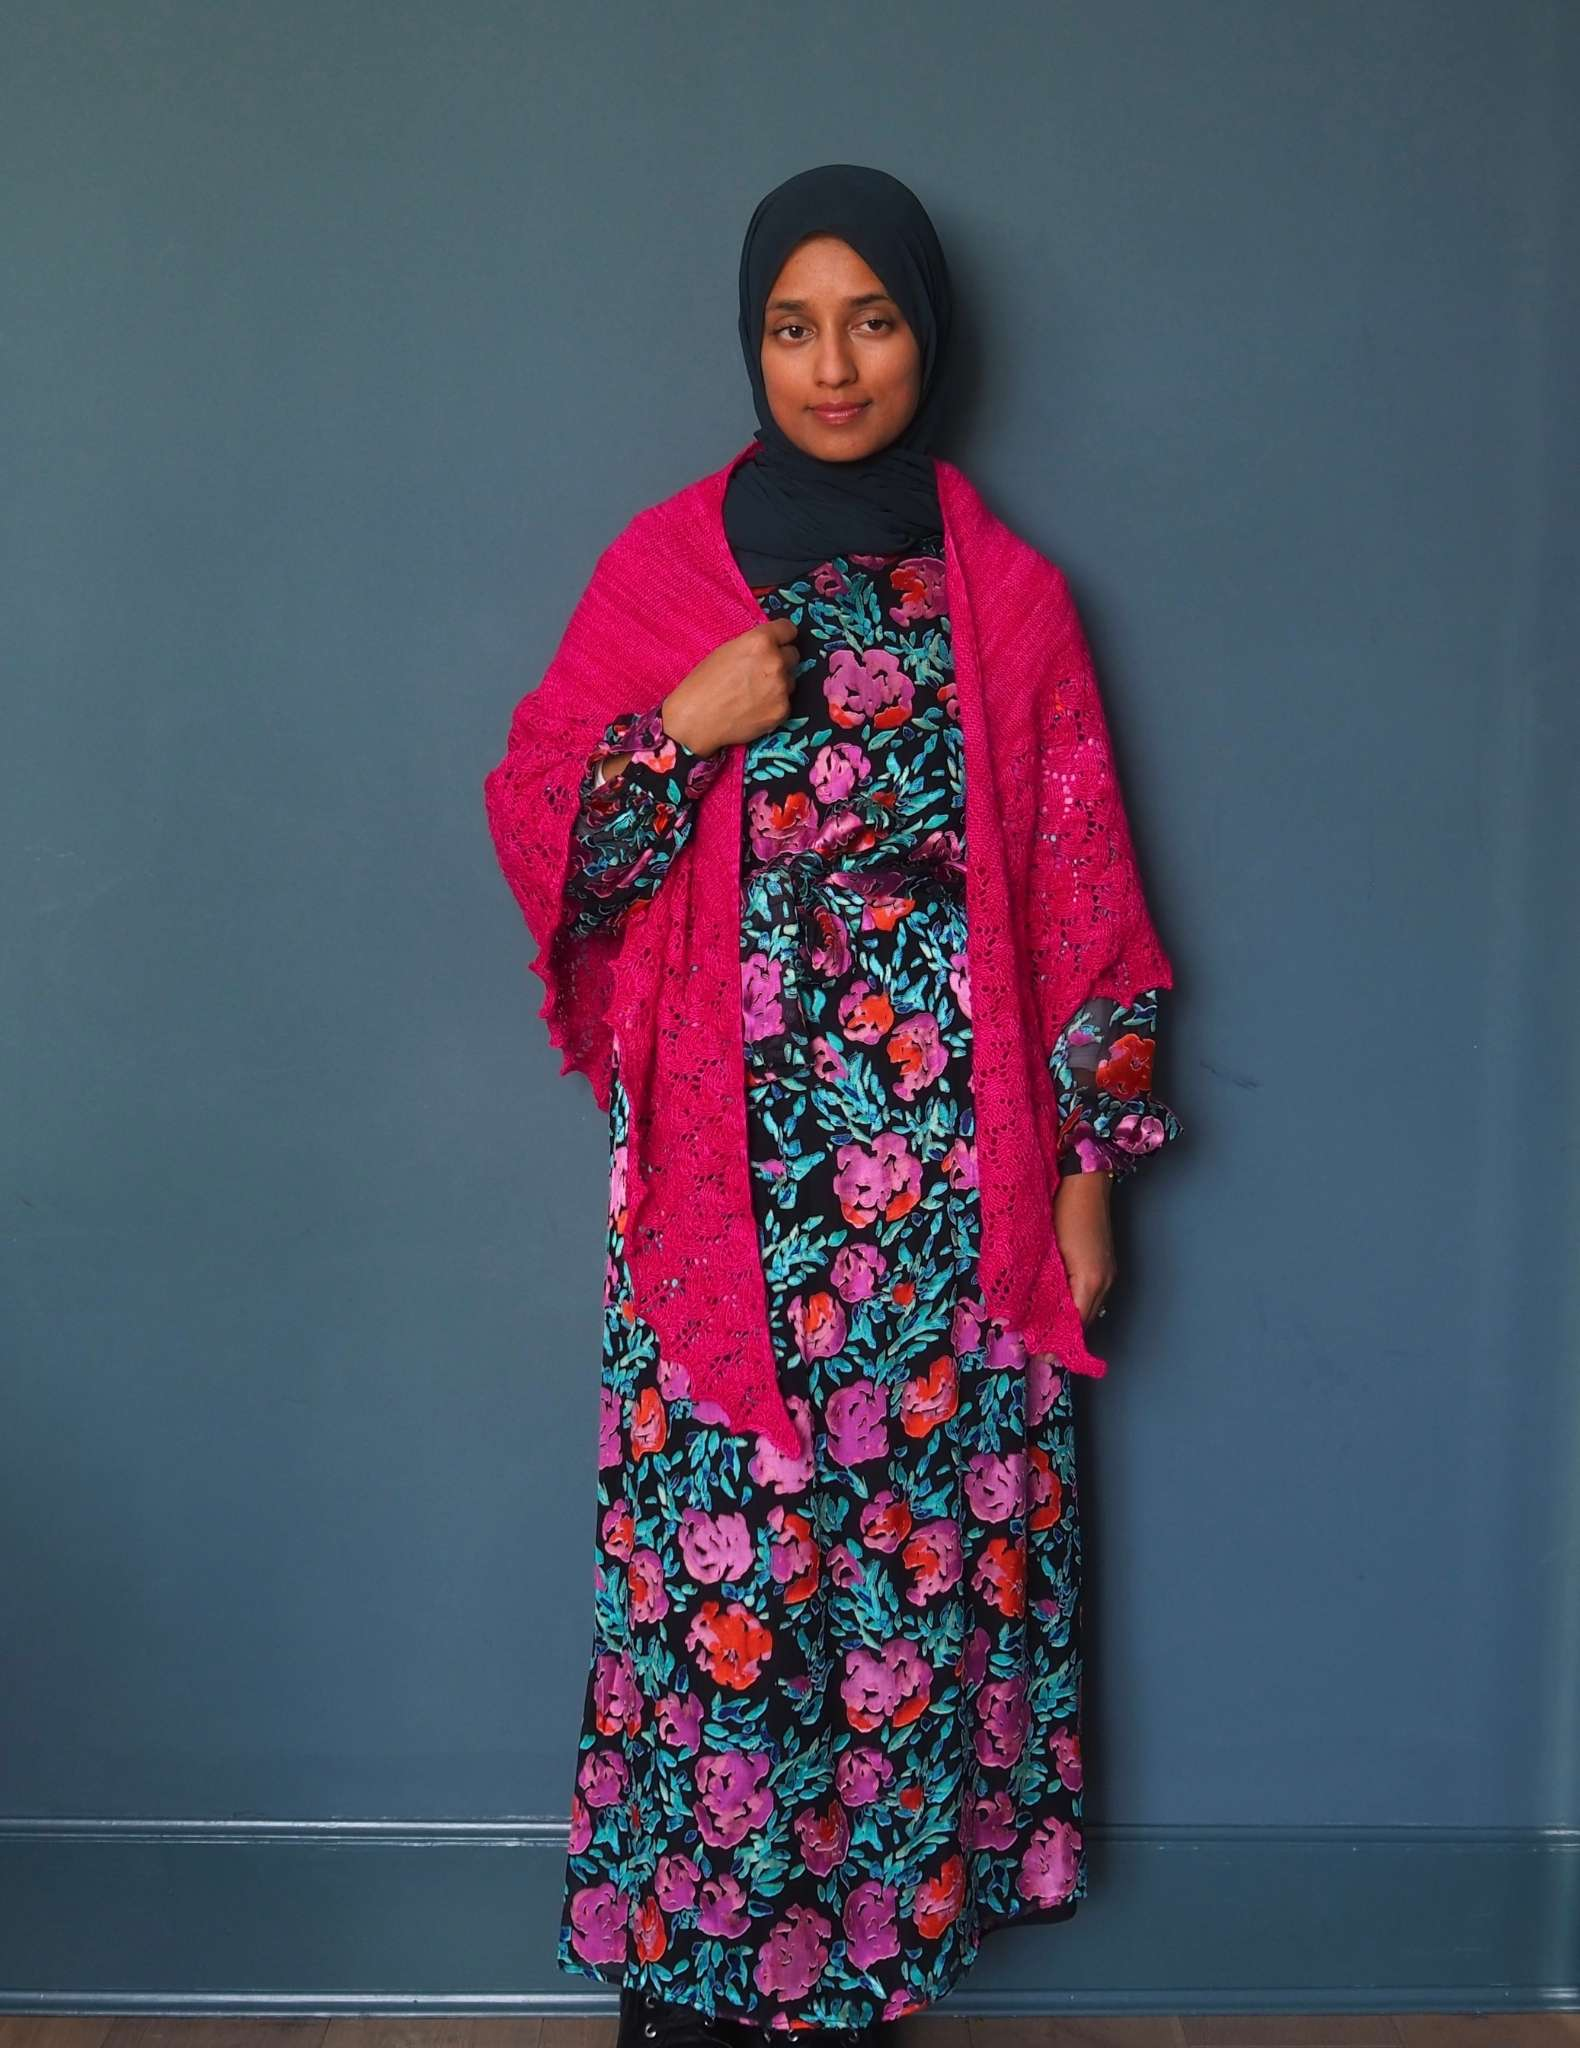 A brown woman in a hijab stands in front of a dark blue background. She is wearing a vivid floral print dress in black, pinks, orange and greens. She has a large bright pink shawl around her neck with the pointed ends hanging down at the front, and her right hand is raised and holding the straight edge of the shawl along her chest.